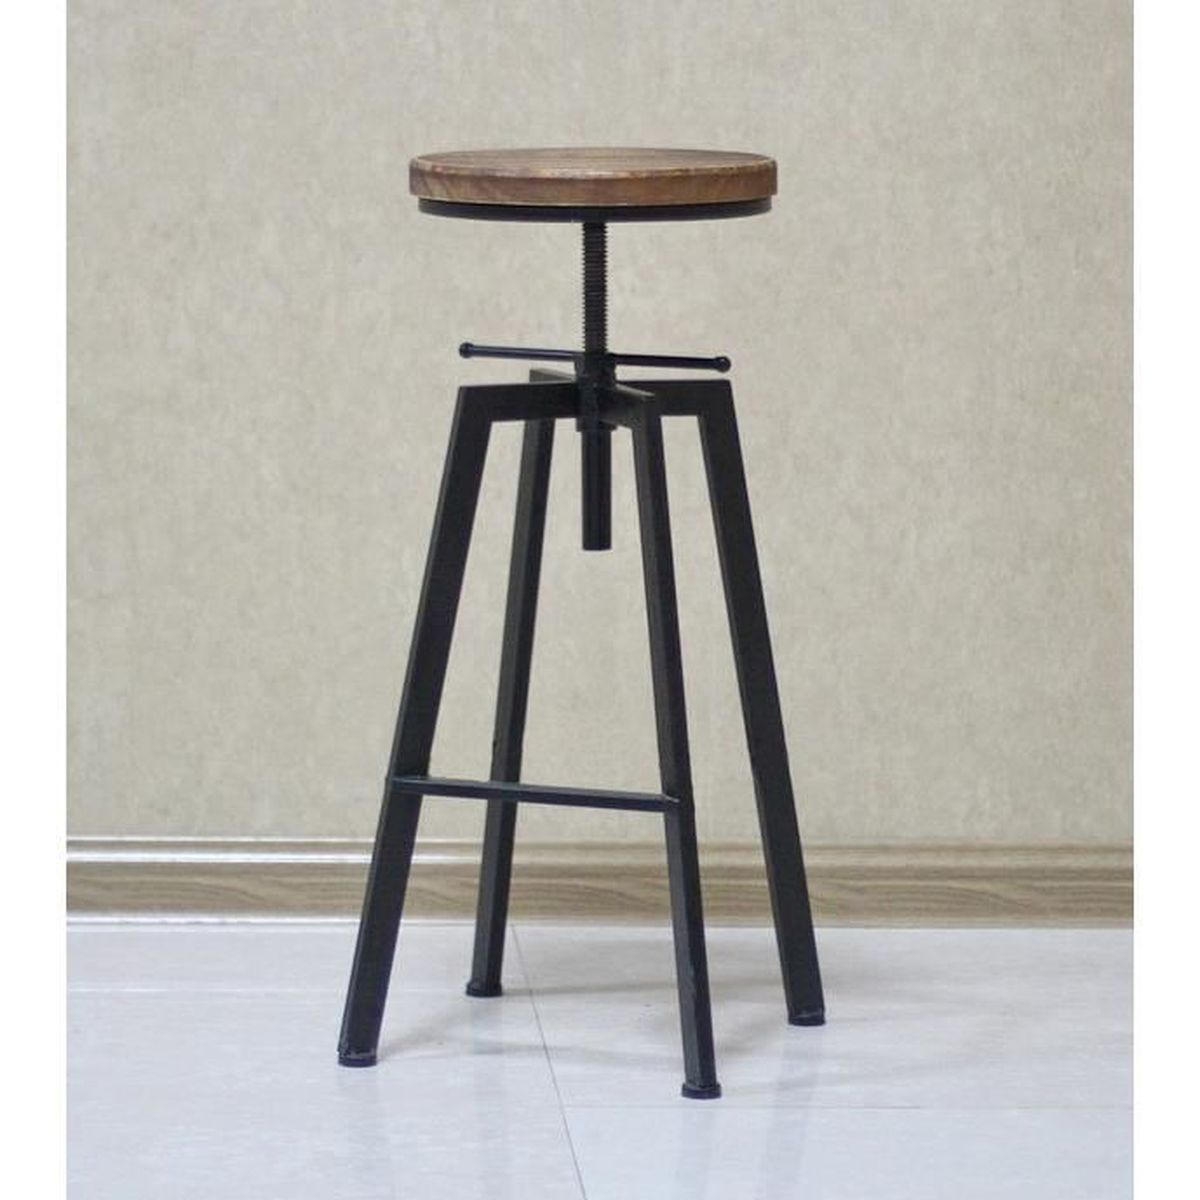 tabouret industriel achat vente tabouret industriel pas cher les soldes. Black Bedroom Furniture Sets. Home Design Ideas